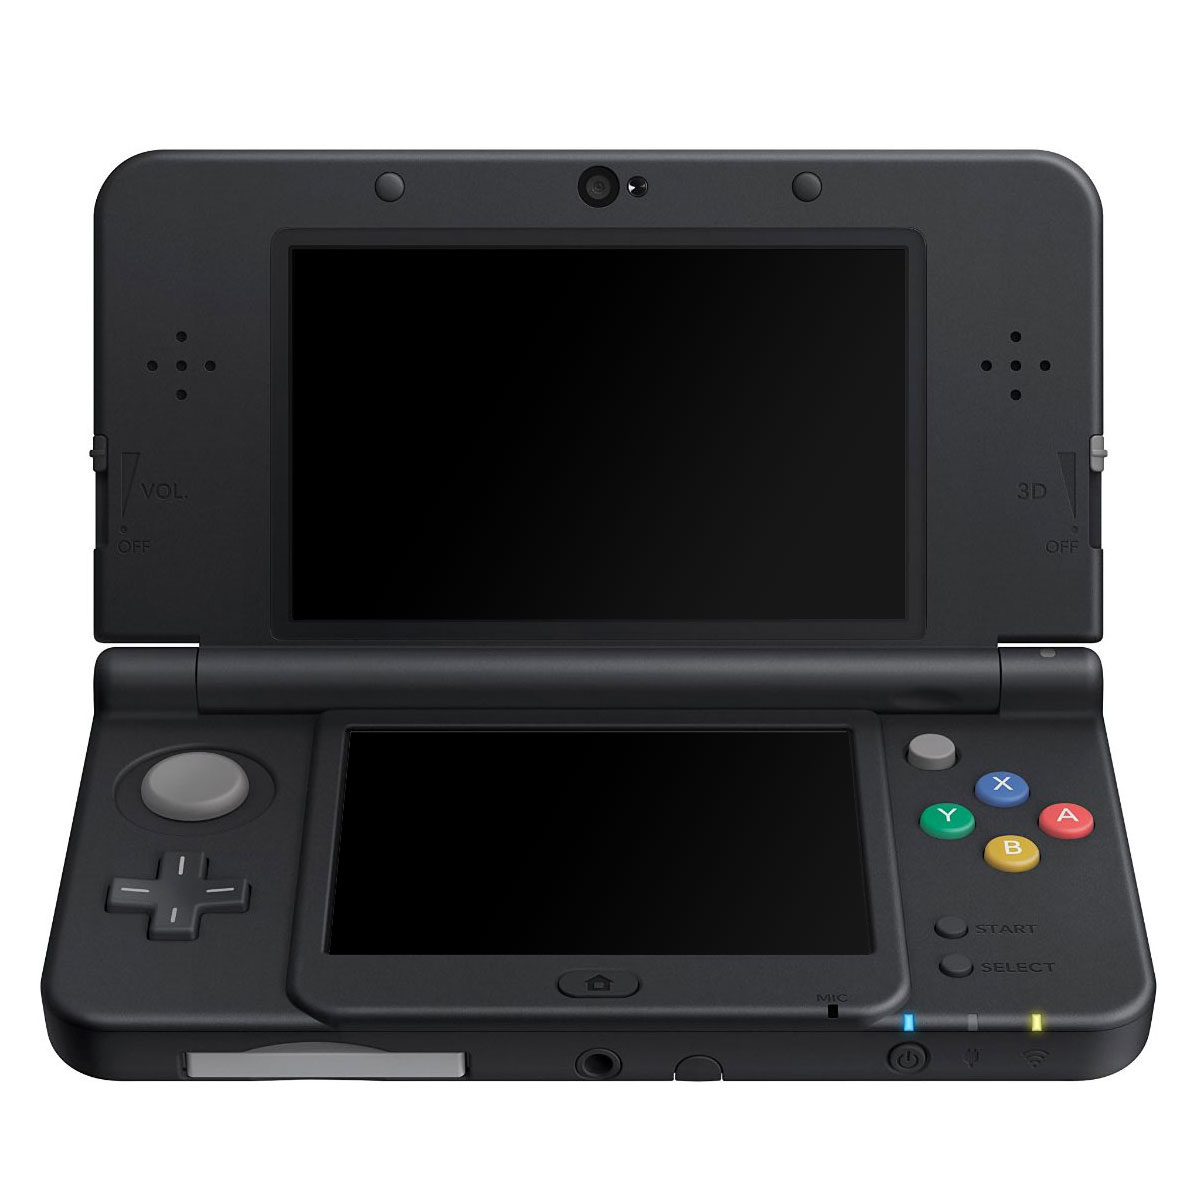 nintendo new 3ds noire console nintendo 3ds nintendo sur. Black Bedroom Furniture Sets. Home Design Ideas